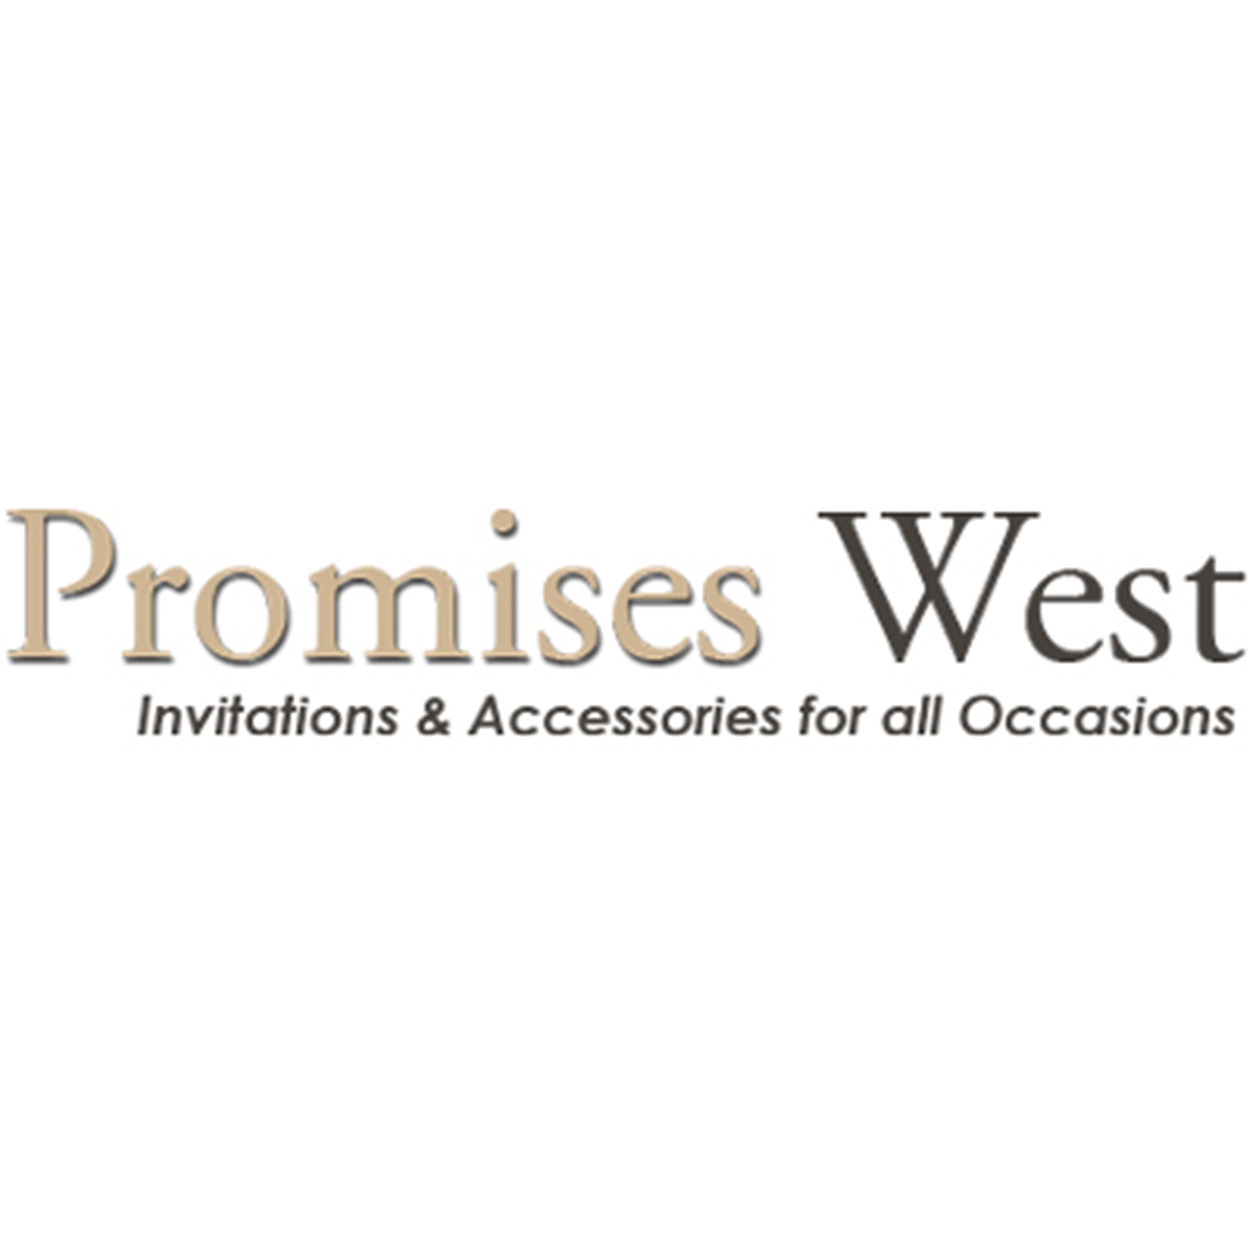 Promises West image 14